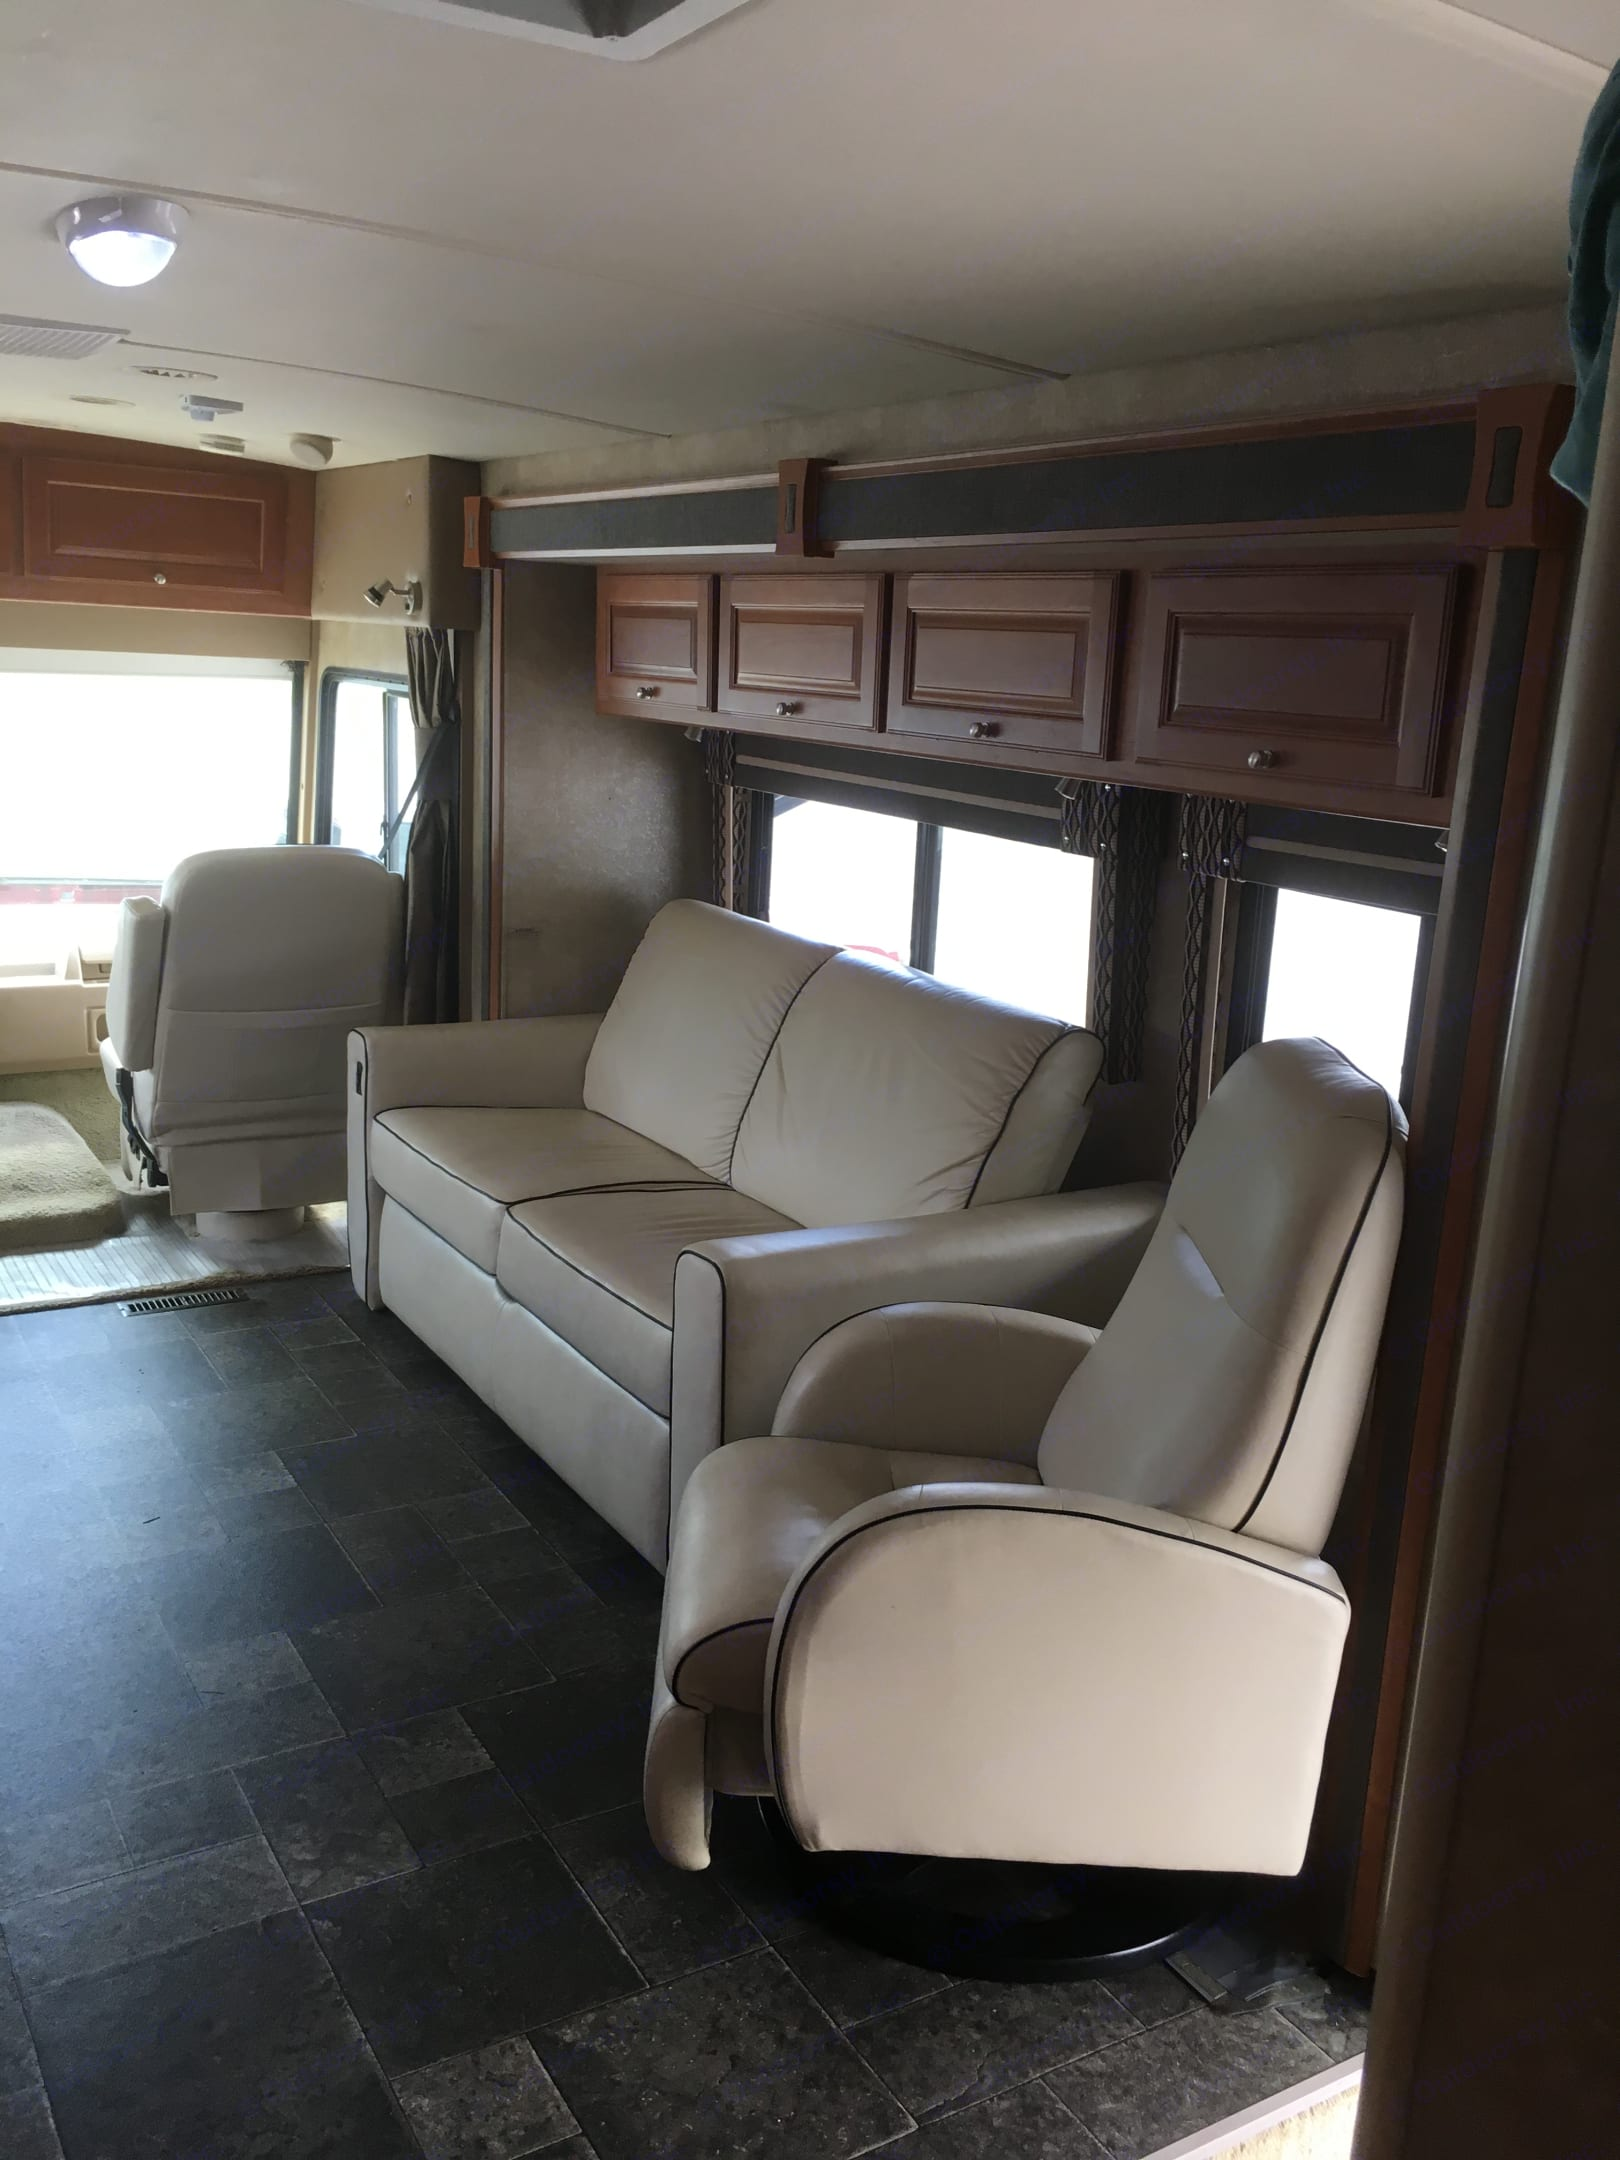 Couch converts to a bed. Winnebago Itasca Sunova 2014